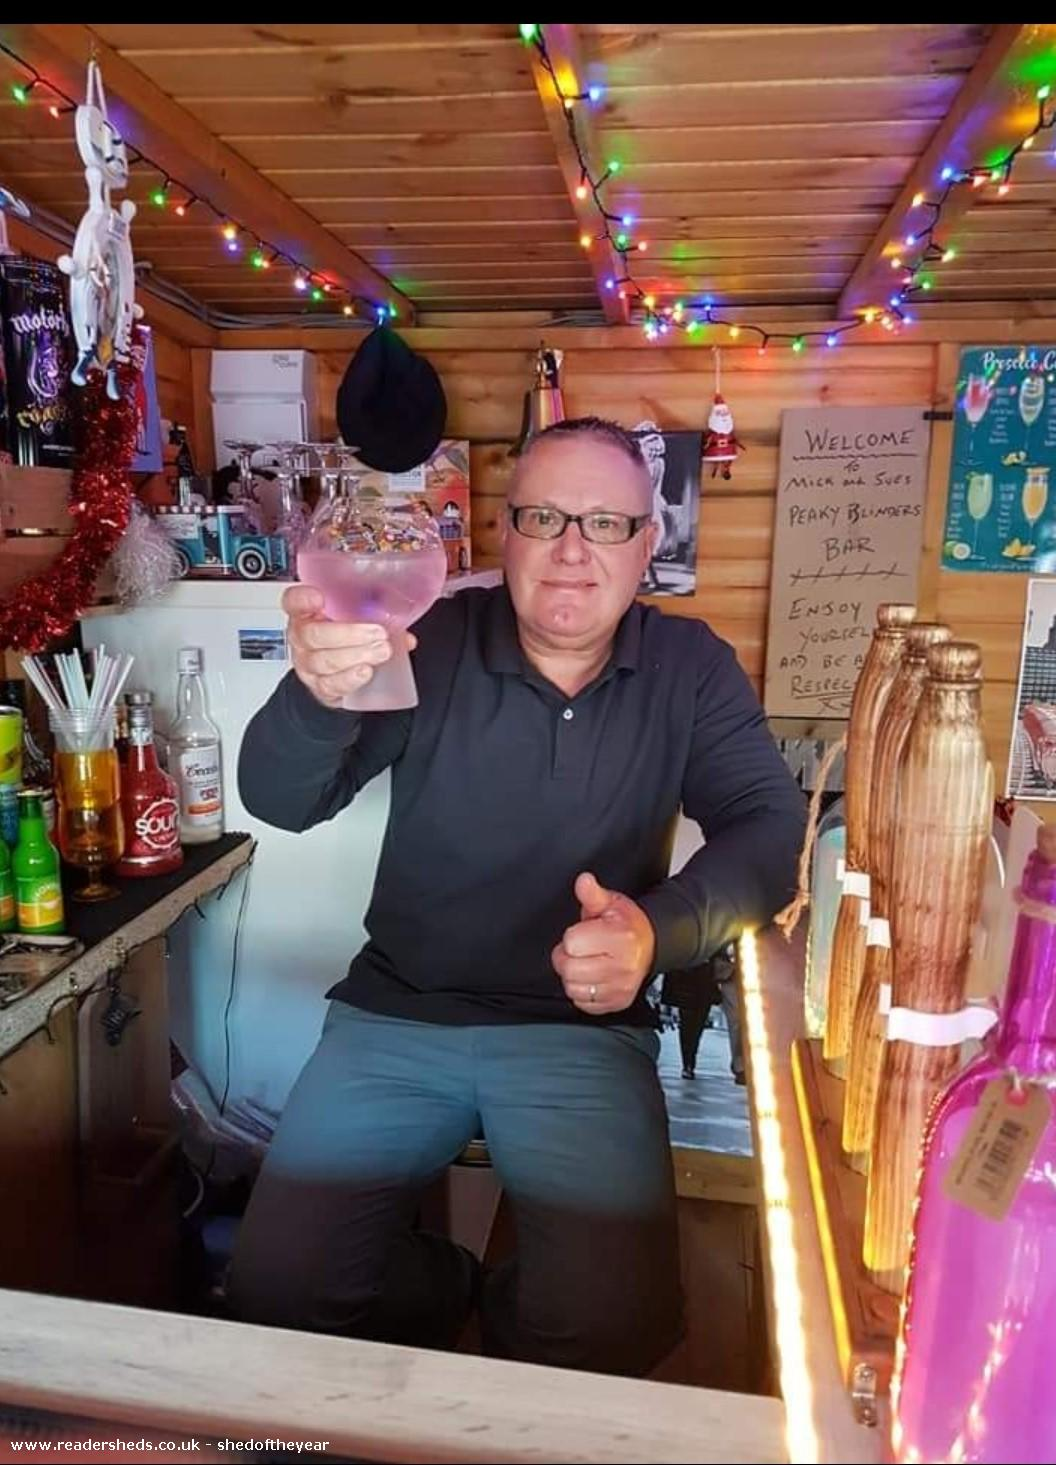 Photo of Mick & Sues Peaky Blinders Bar, entry to Shed of the year